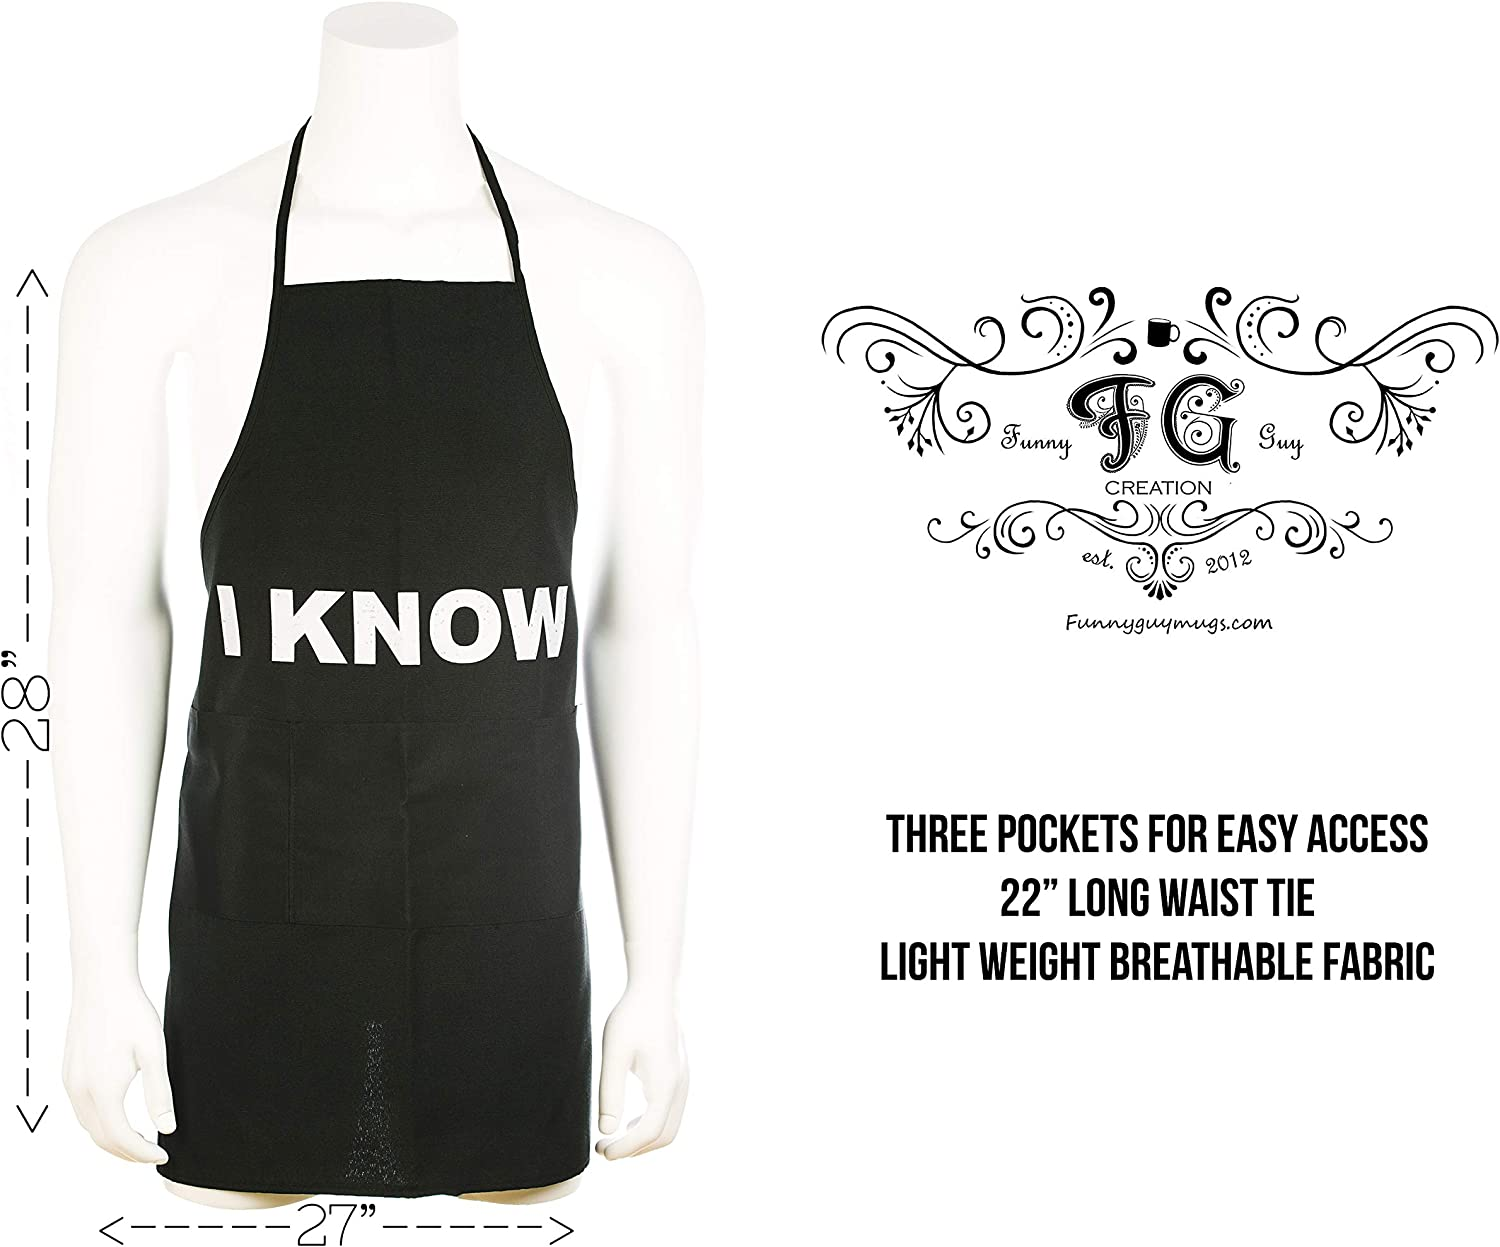 Funny Apron for Couples Funny Guy Mugs 2 Pack I Love You /& I Know Aprons with Pockets Perfect for Kitchen BBQ Grilling Barbecue Cooking Baking Crafting Gardening